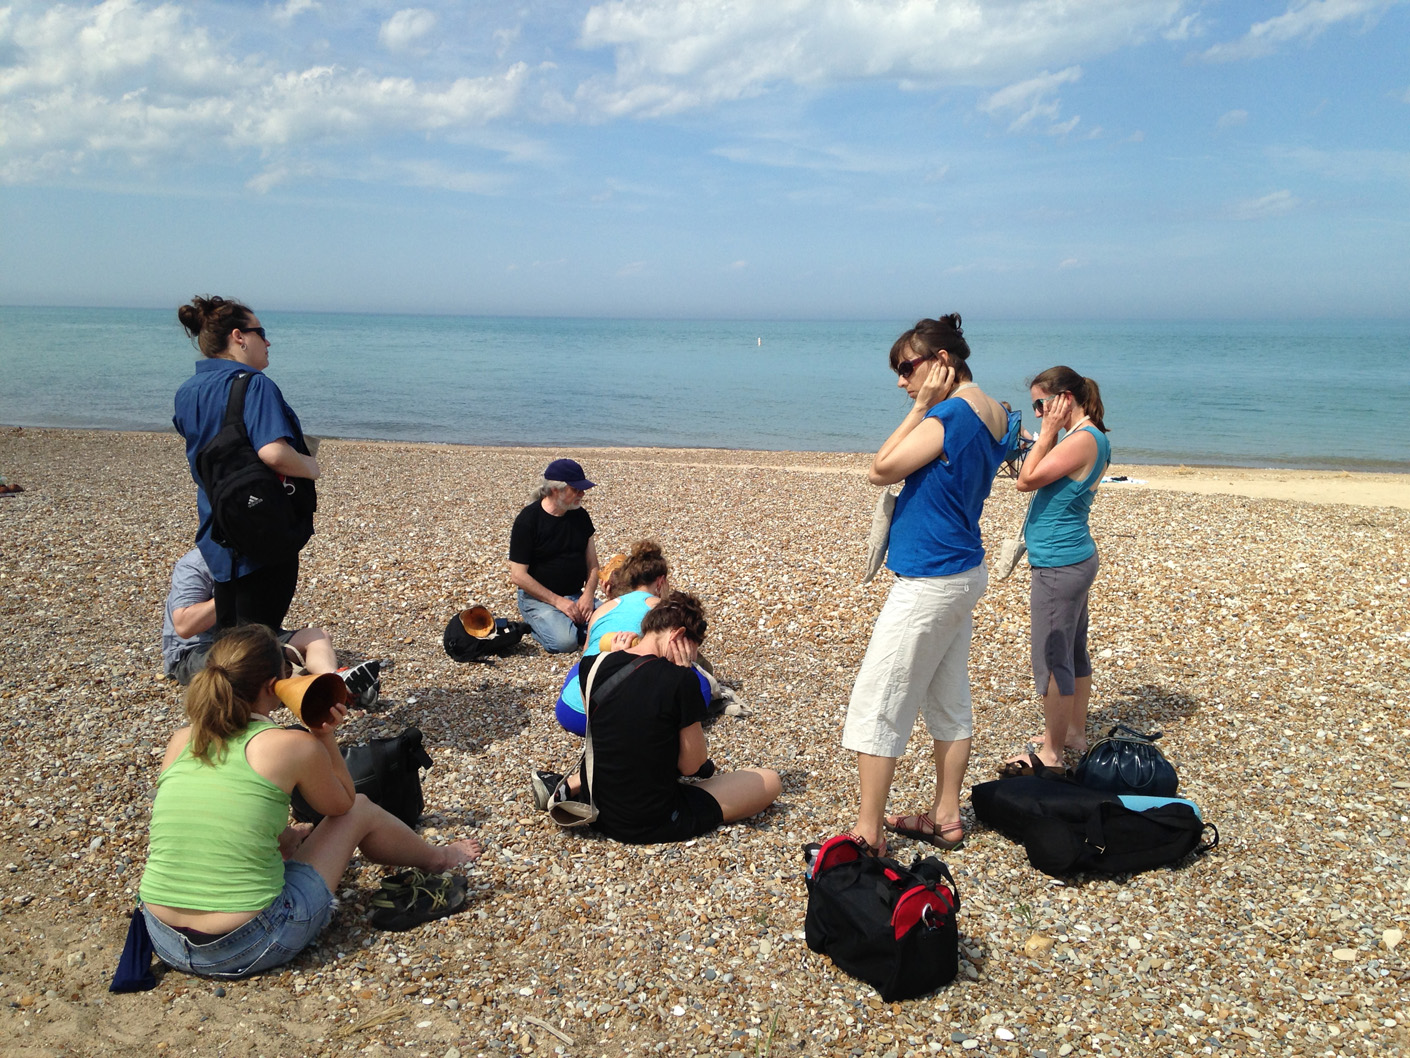 """Performing John Cage's 4'33"""" at Loyola Dunes Beach, hand carved wooden burl trumpets in use, walk planned and led by Karen McCoy, sponsored by Alternative Spacetime 1300 (artist residency), Chicago, IL. (photo: Karen McCoy)"""